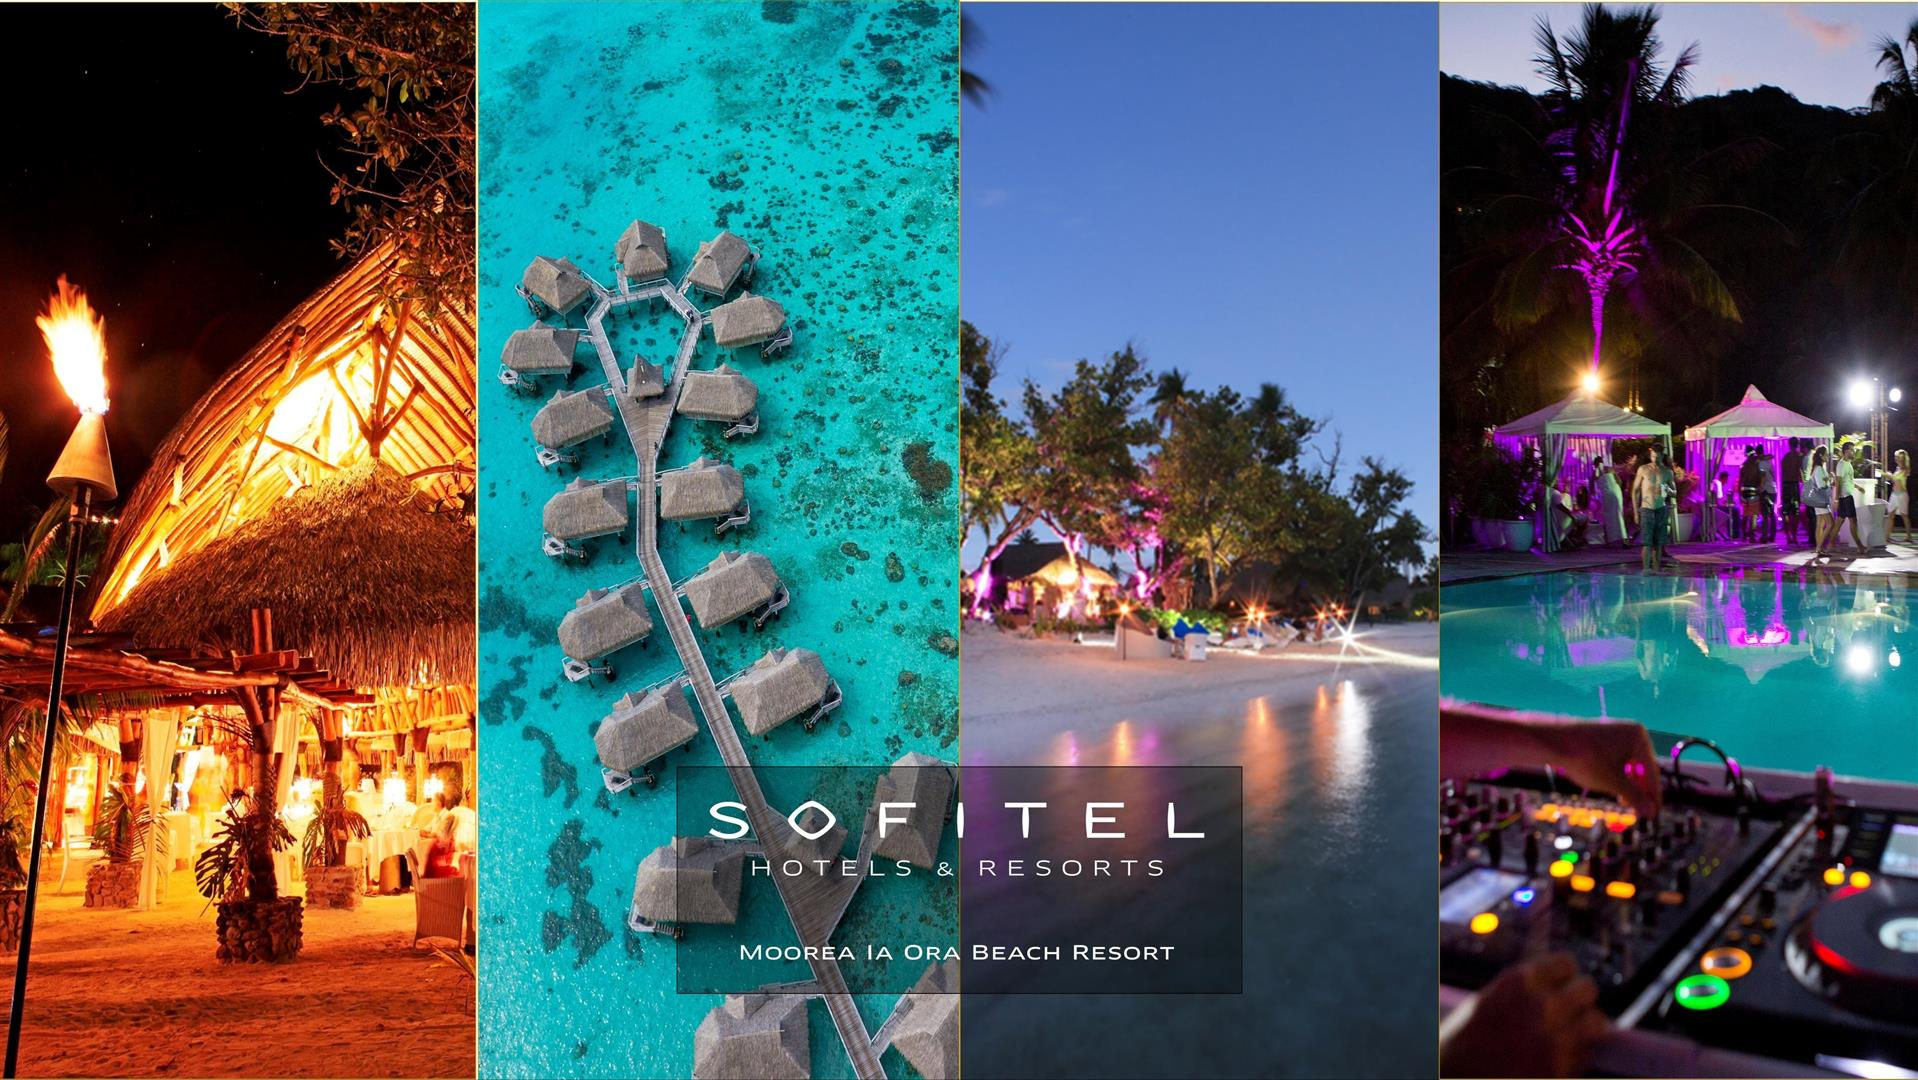 Meetings And Events At Sofitel Moorea La Ora Beach Resort